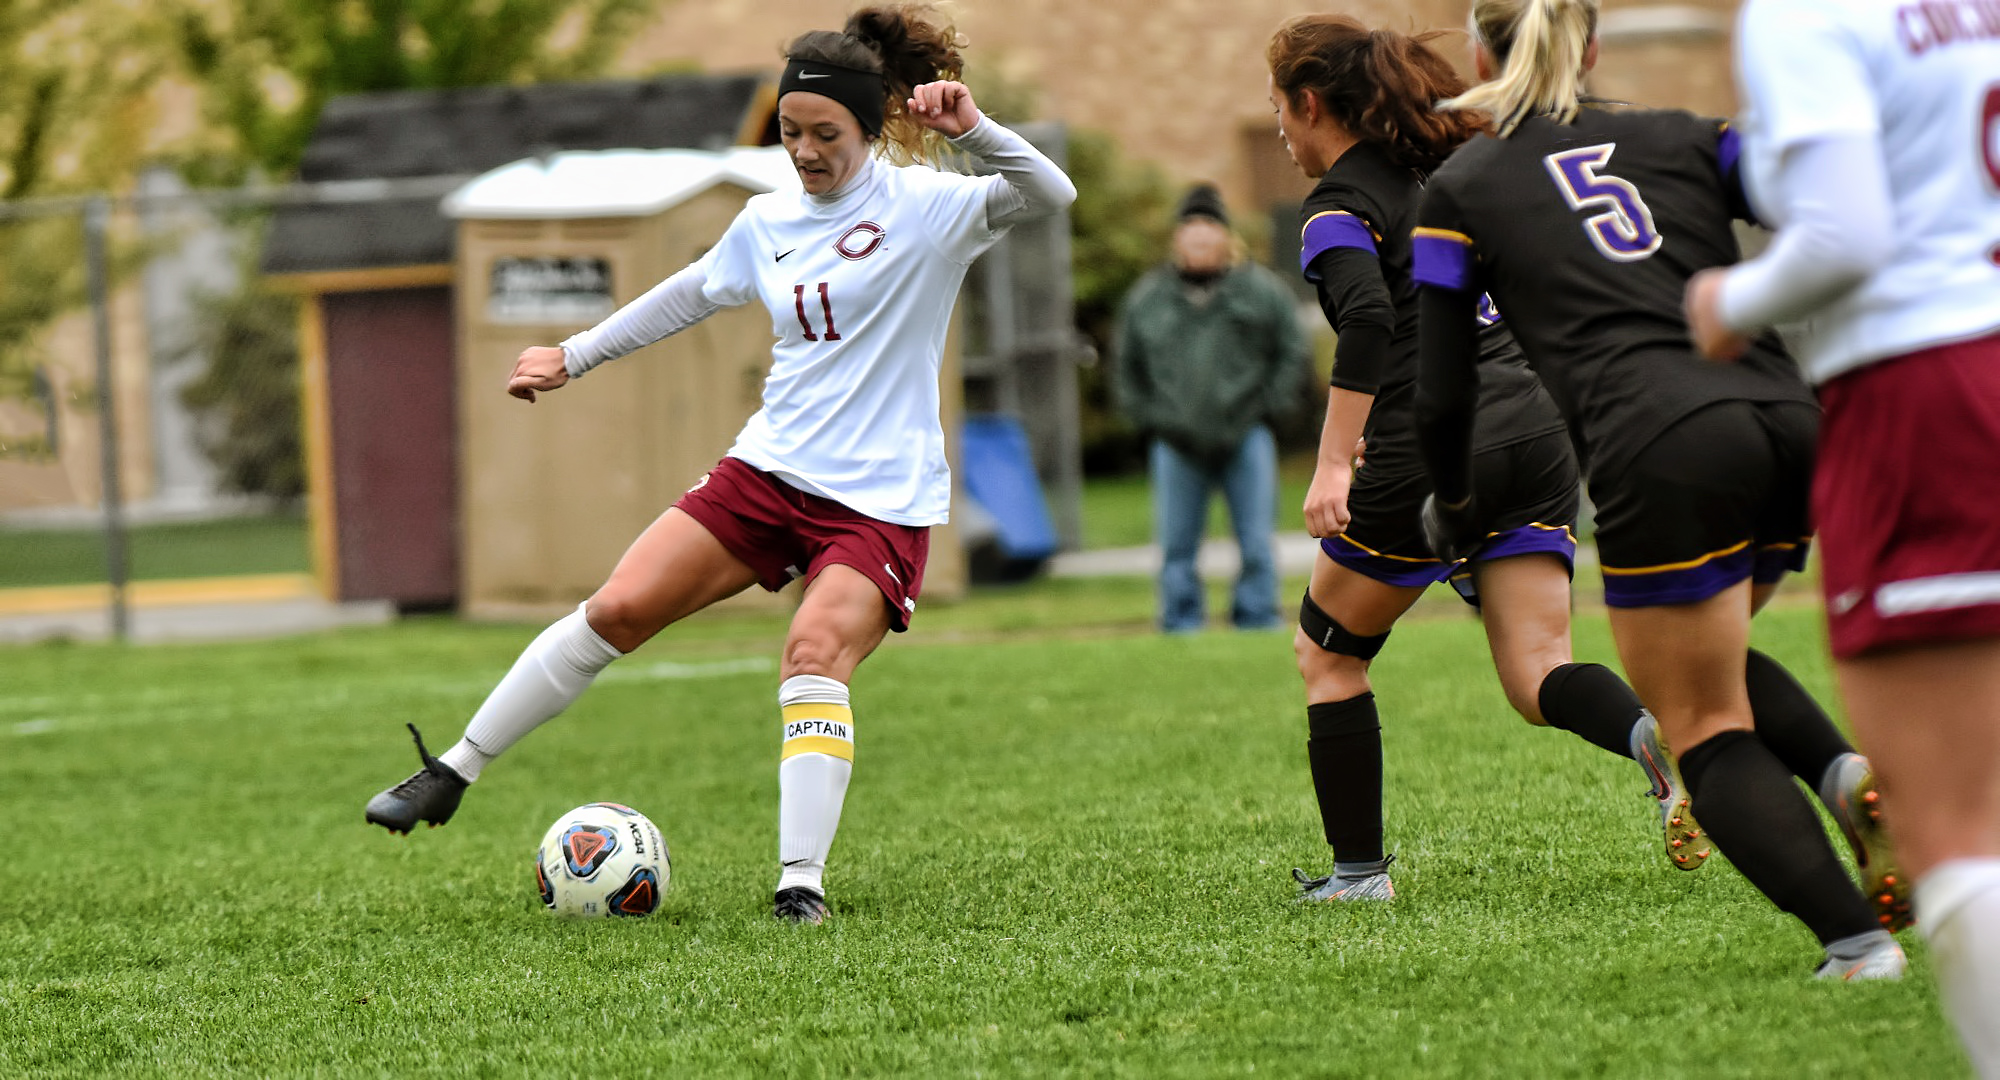 Senior Karsen Granning had a chance in the first in the Cobbers' game at St. Olaf as she played in her final college game.